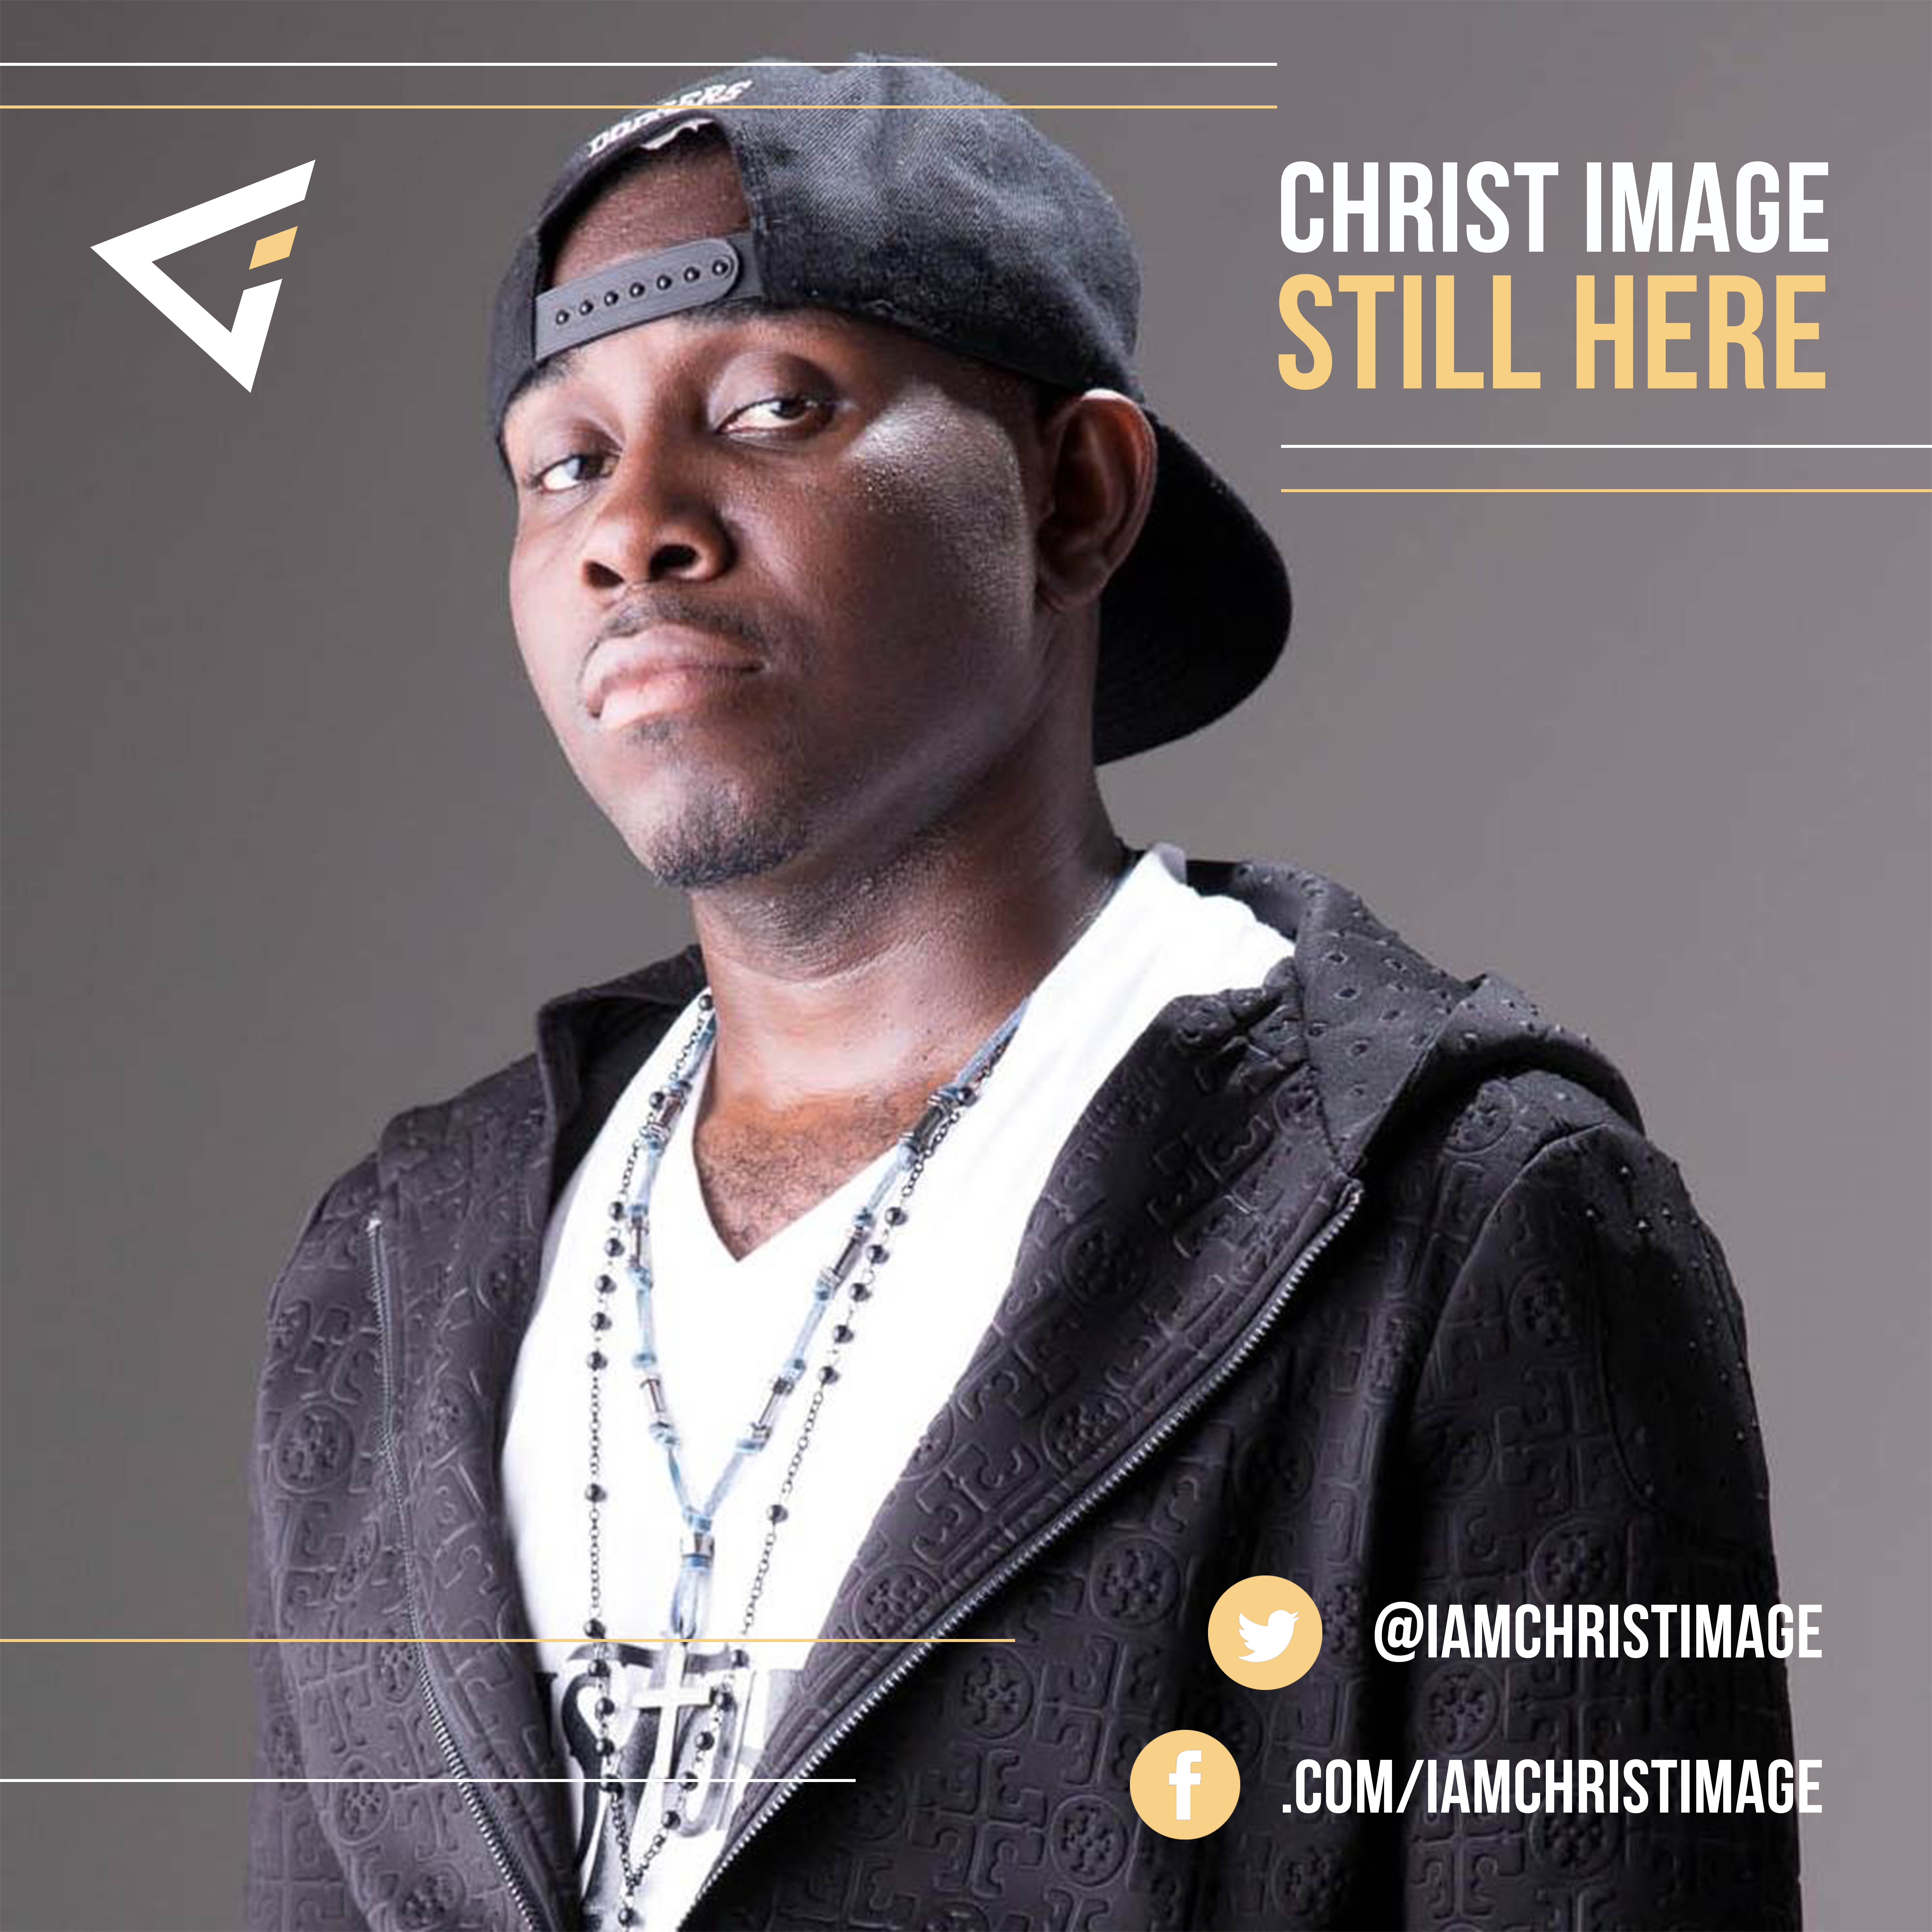 still-here-cover-art-by-christ-image